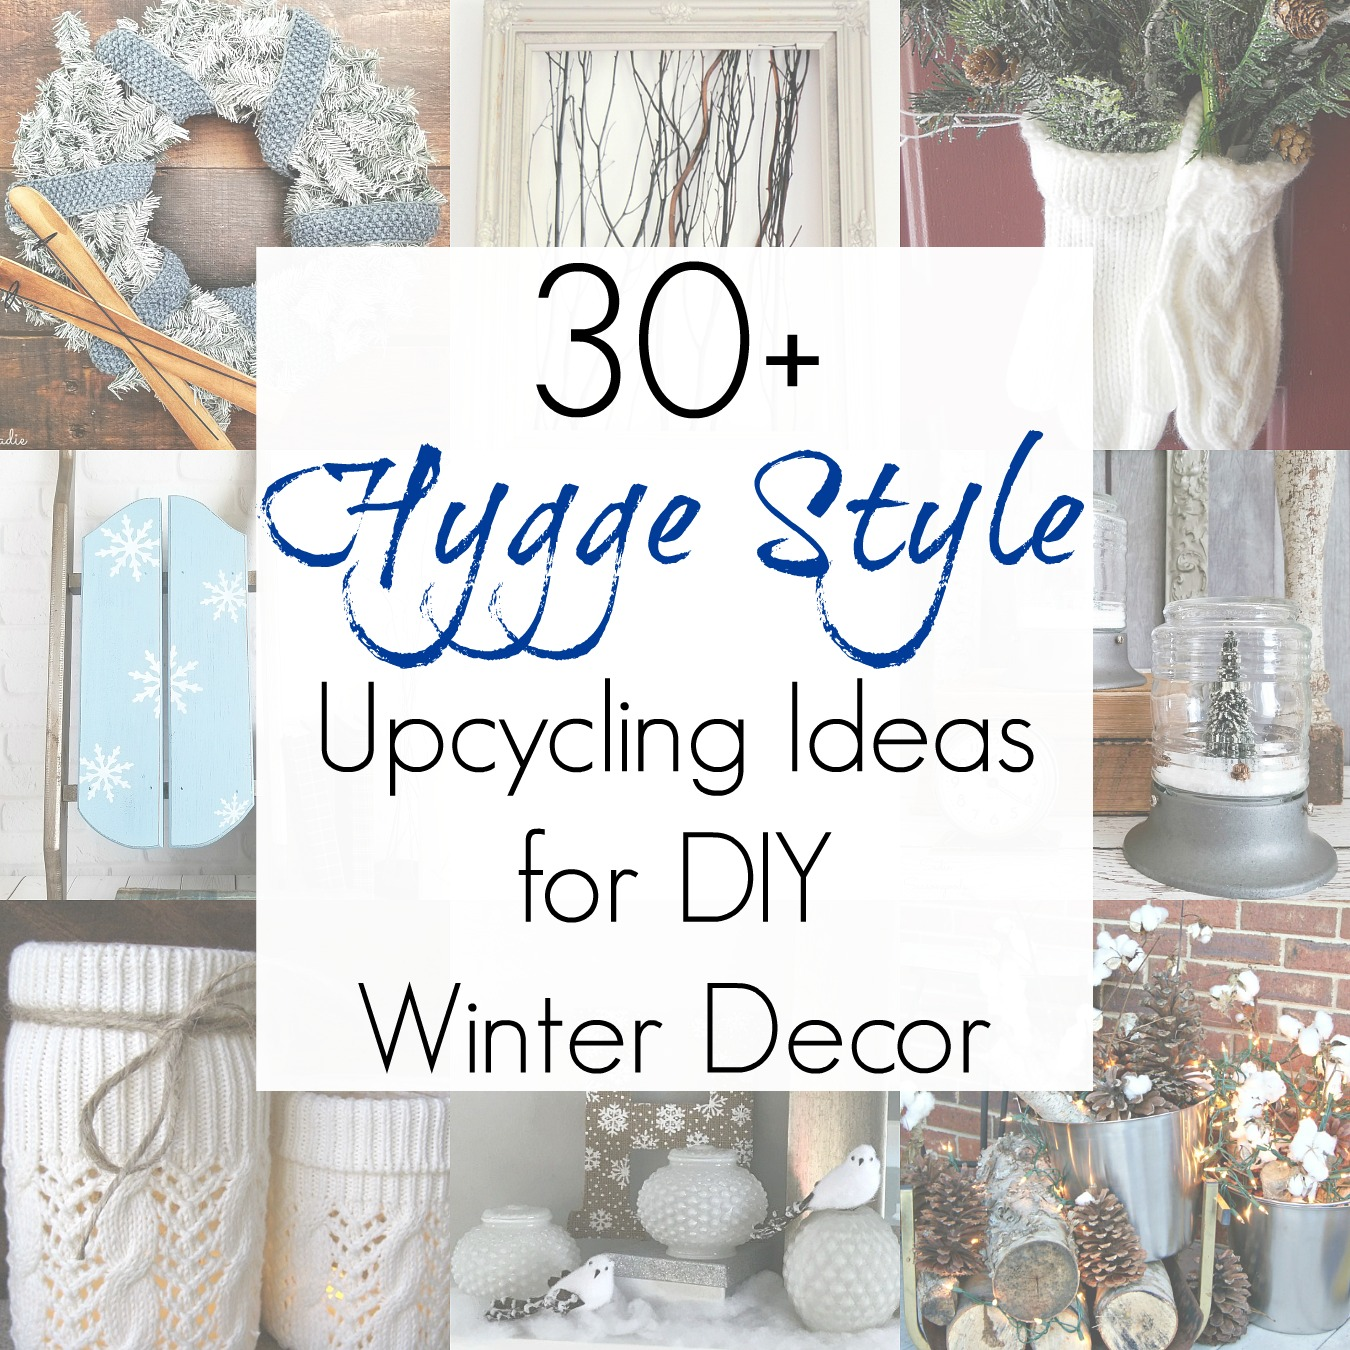 Winter Decor Ideas and Non Christmas Winter Decorations for Hyggelig